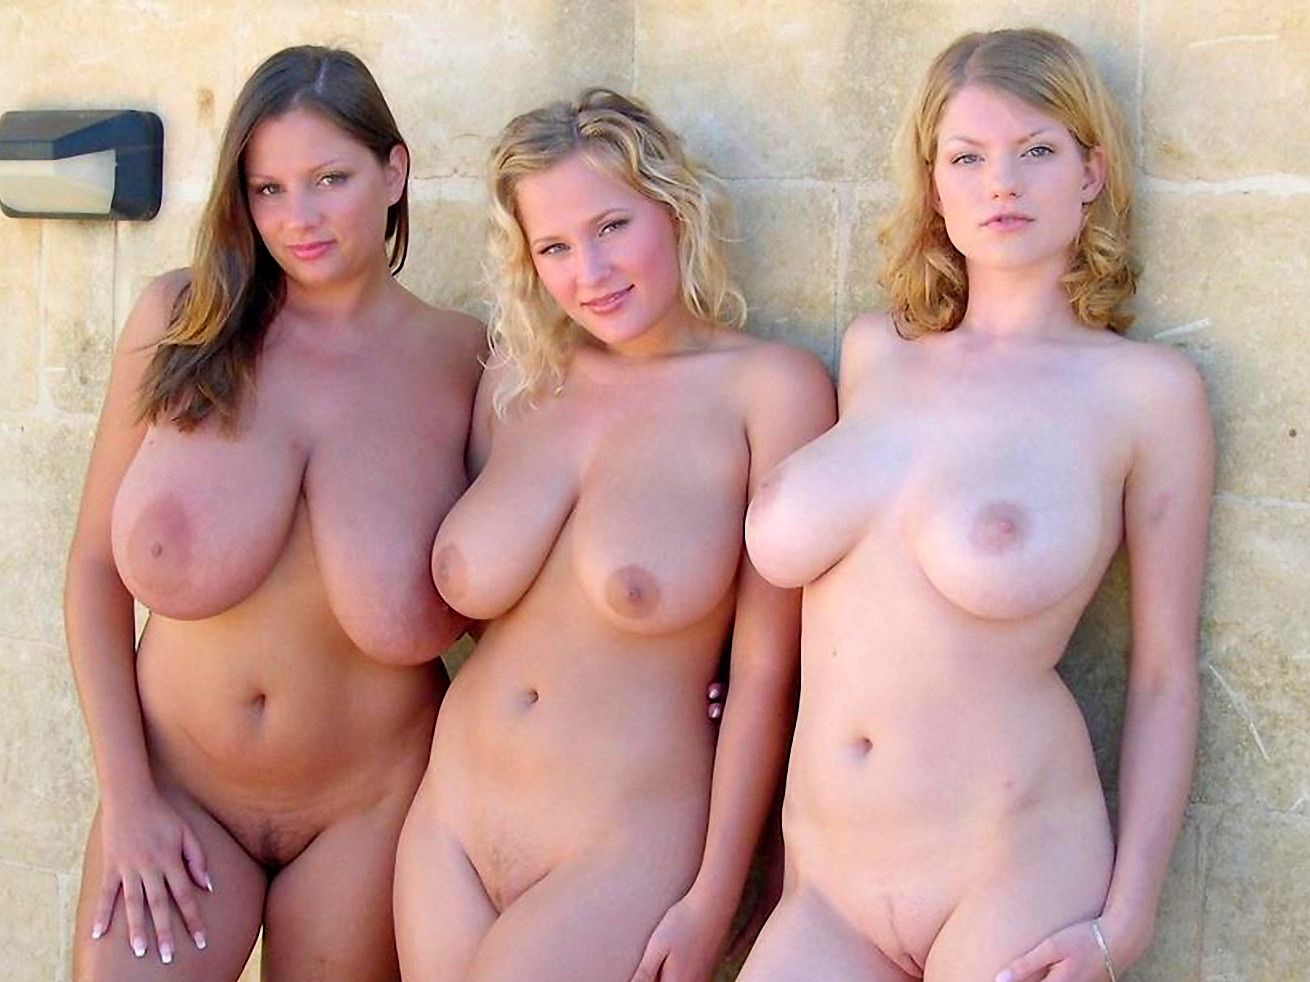 Groups of female nudist with big boobs bitch